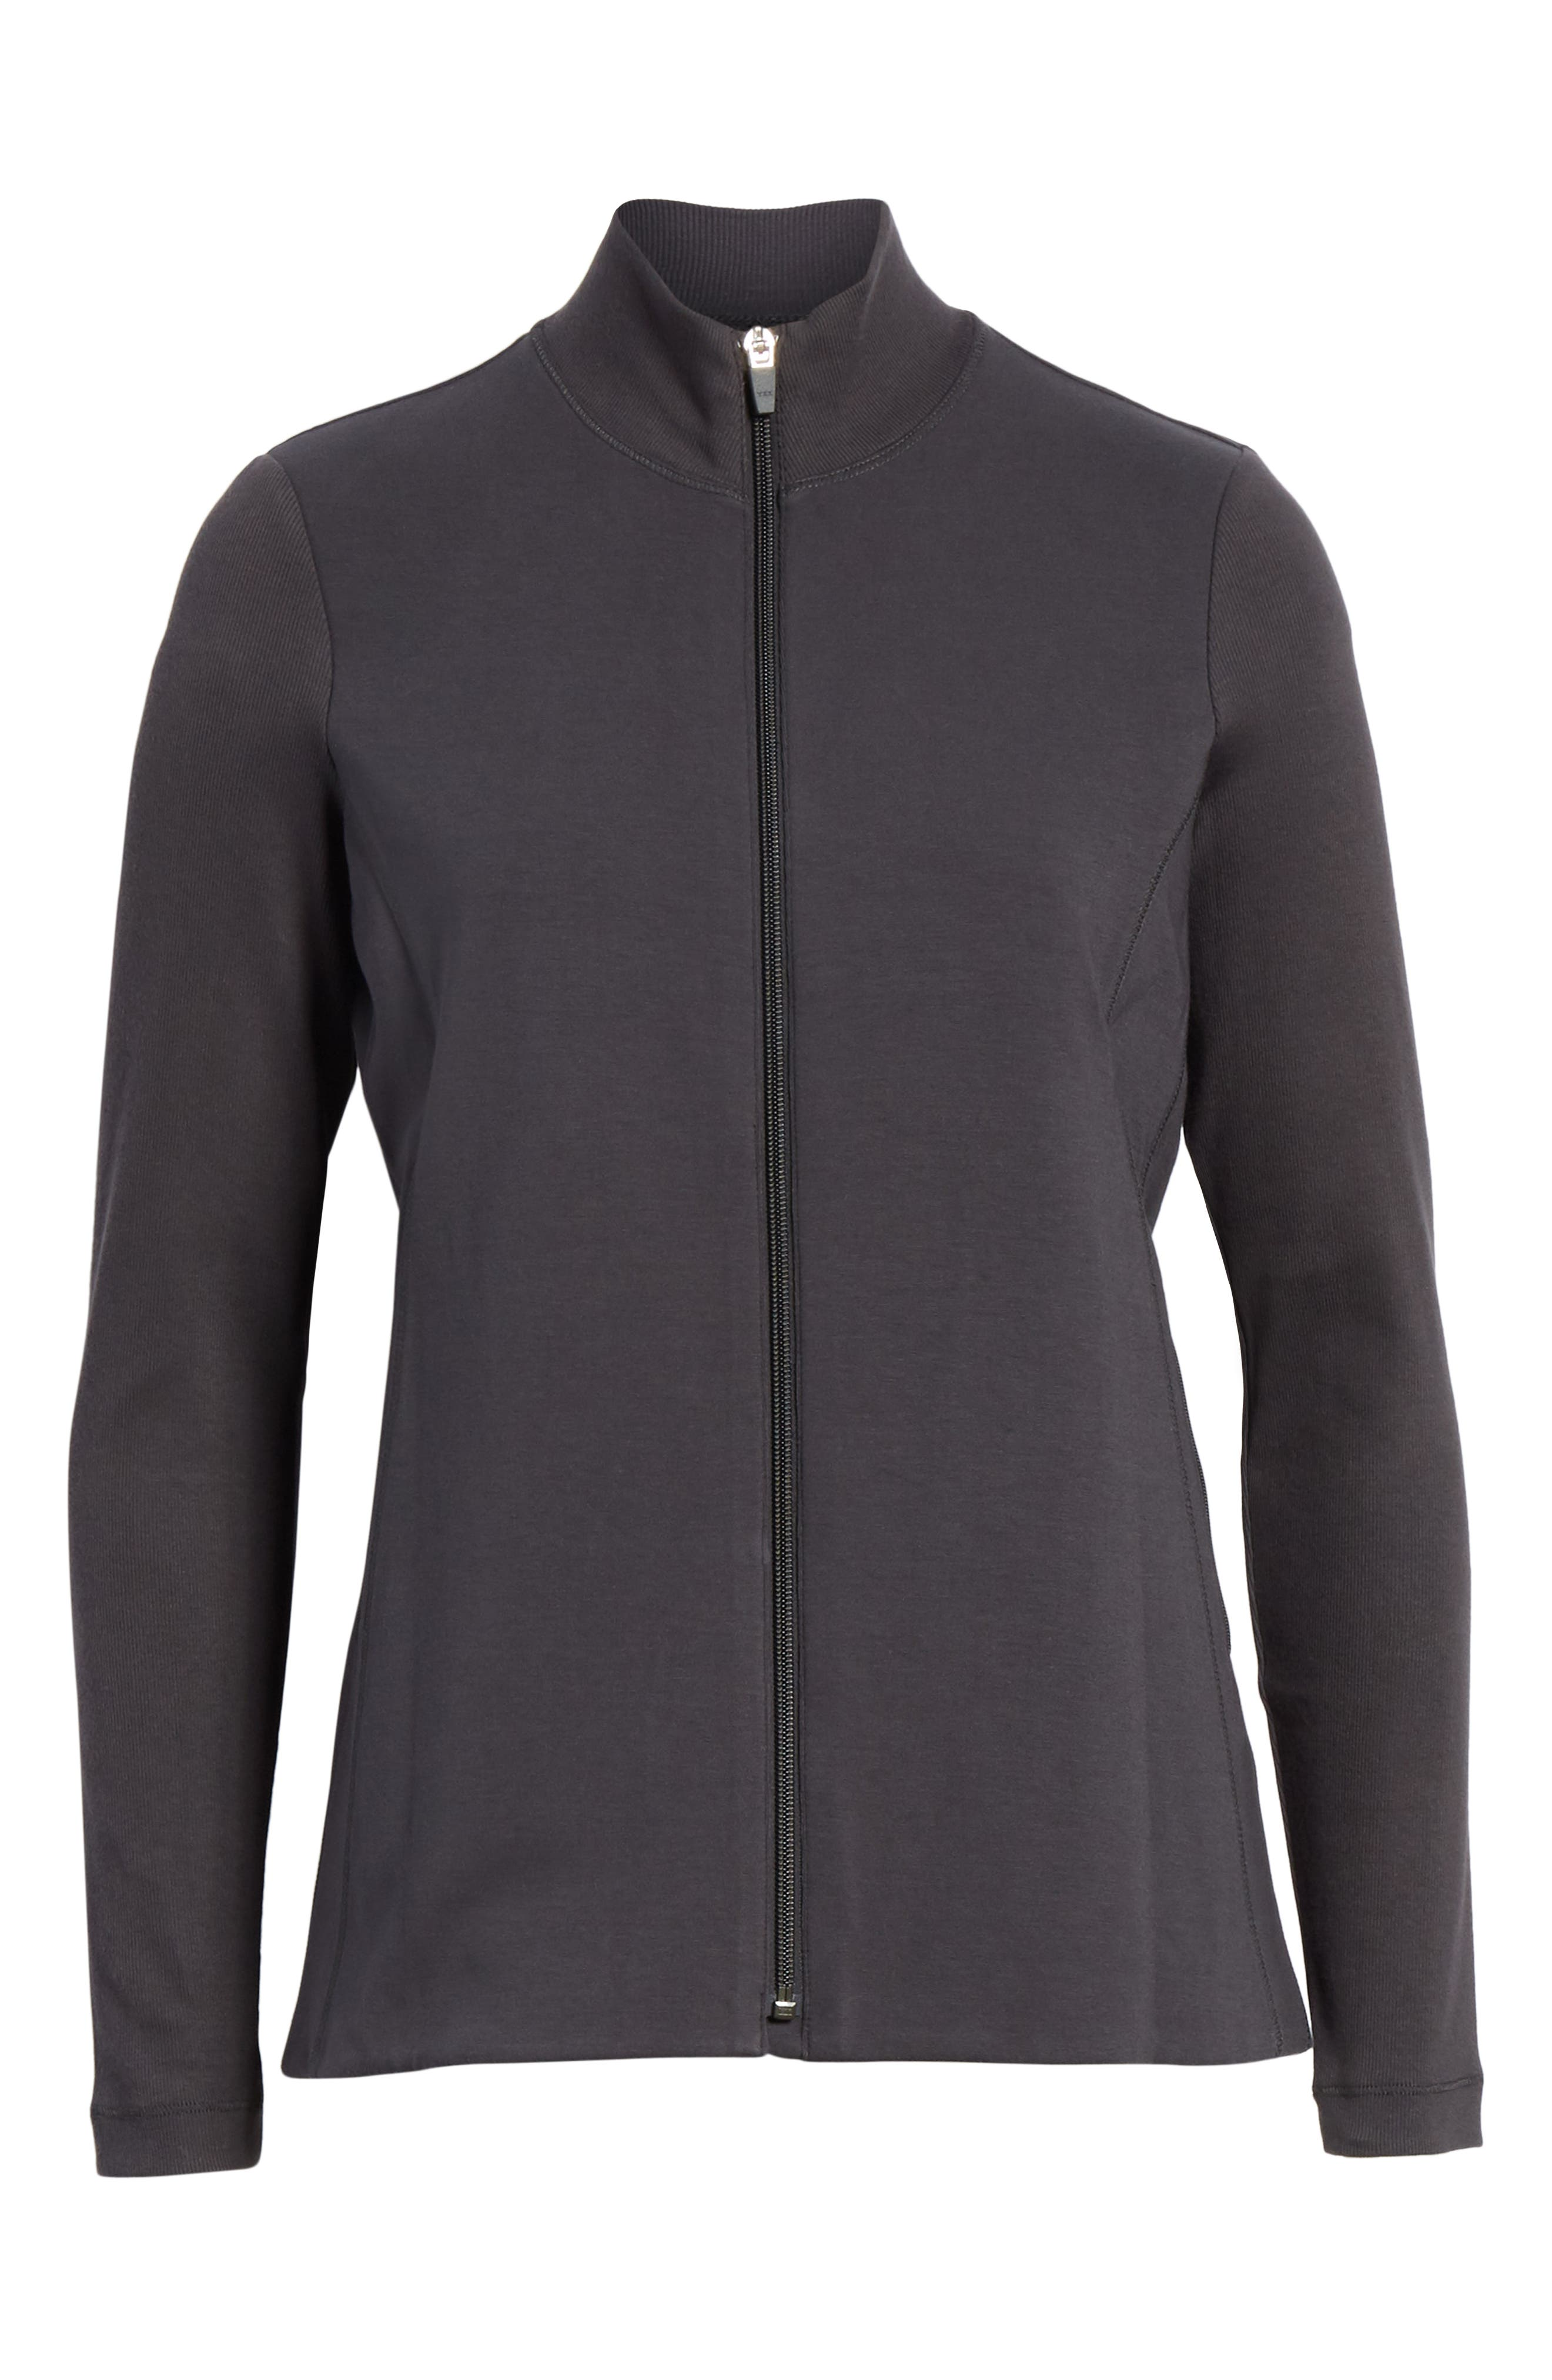 Mixed Organic Cotton Stretch Knit Jacket,                             Alternate thumbnail 6, color,                             Graphite